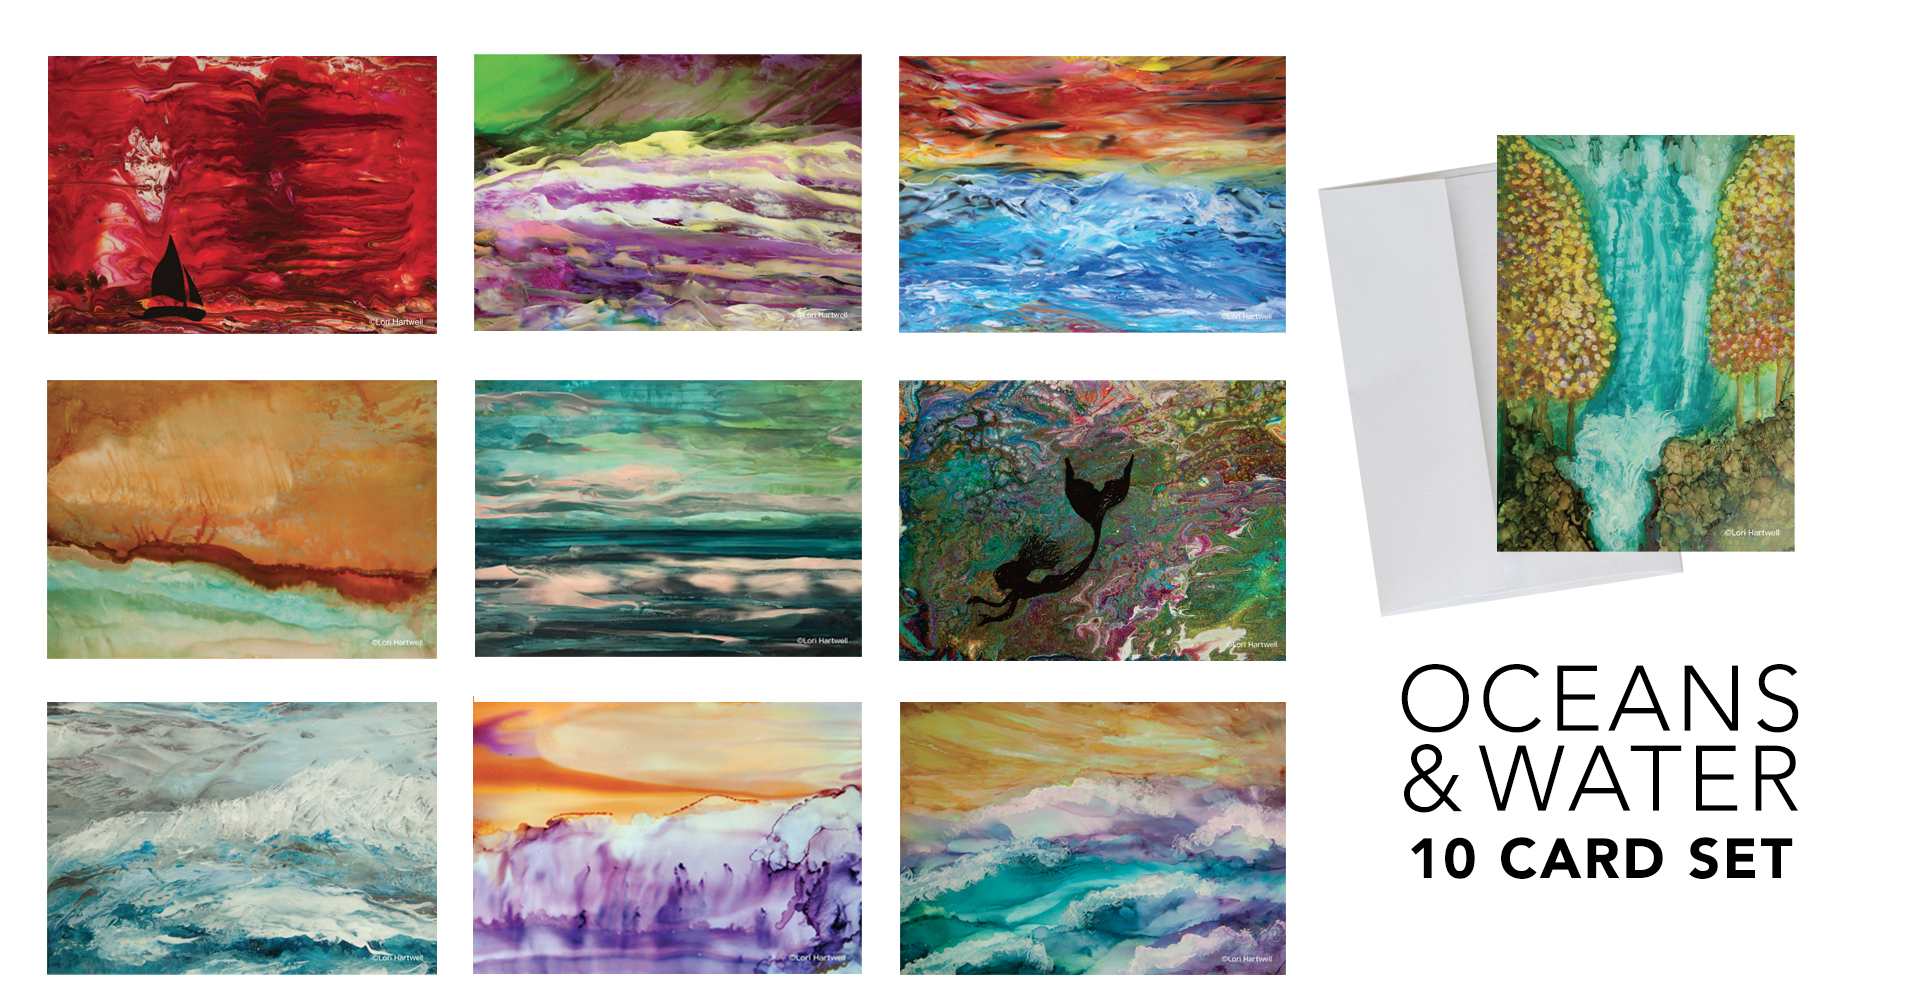 Fine Art Notecards - Oceans- 10 CARD SET